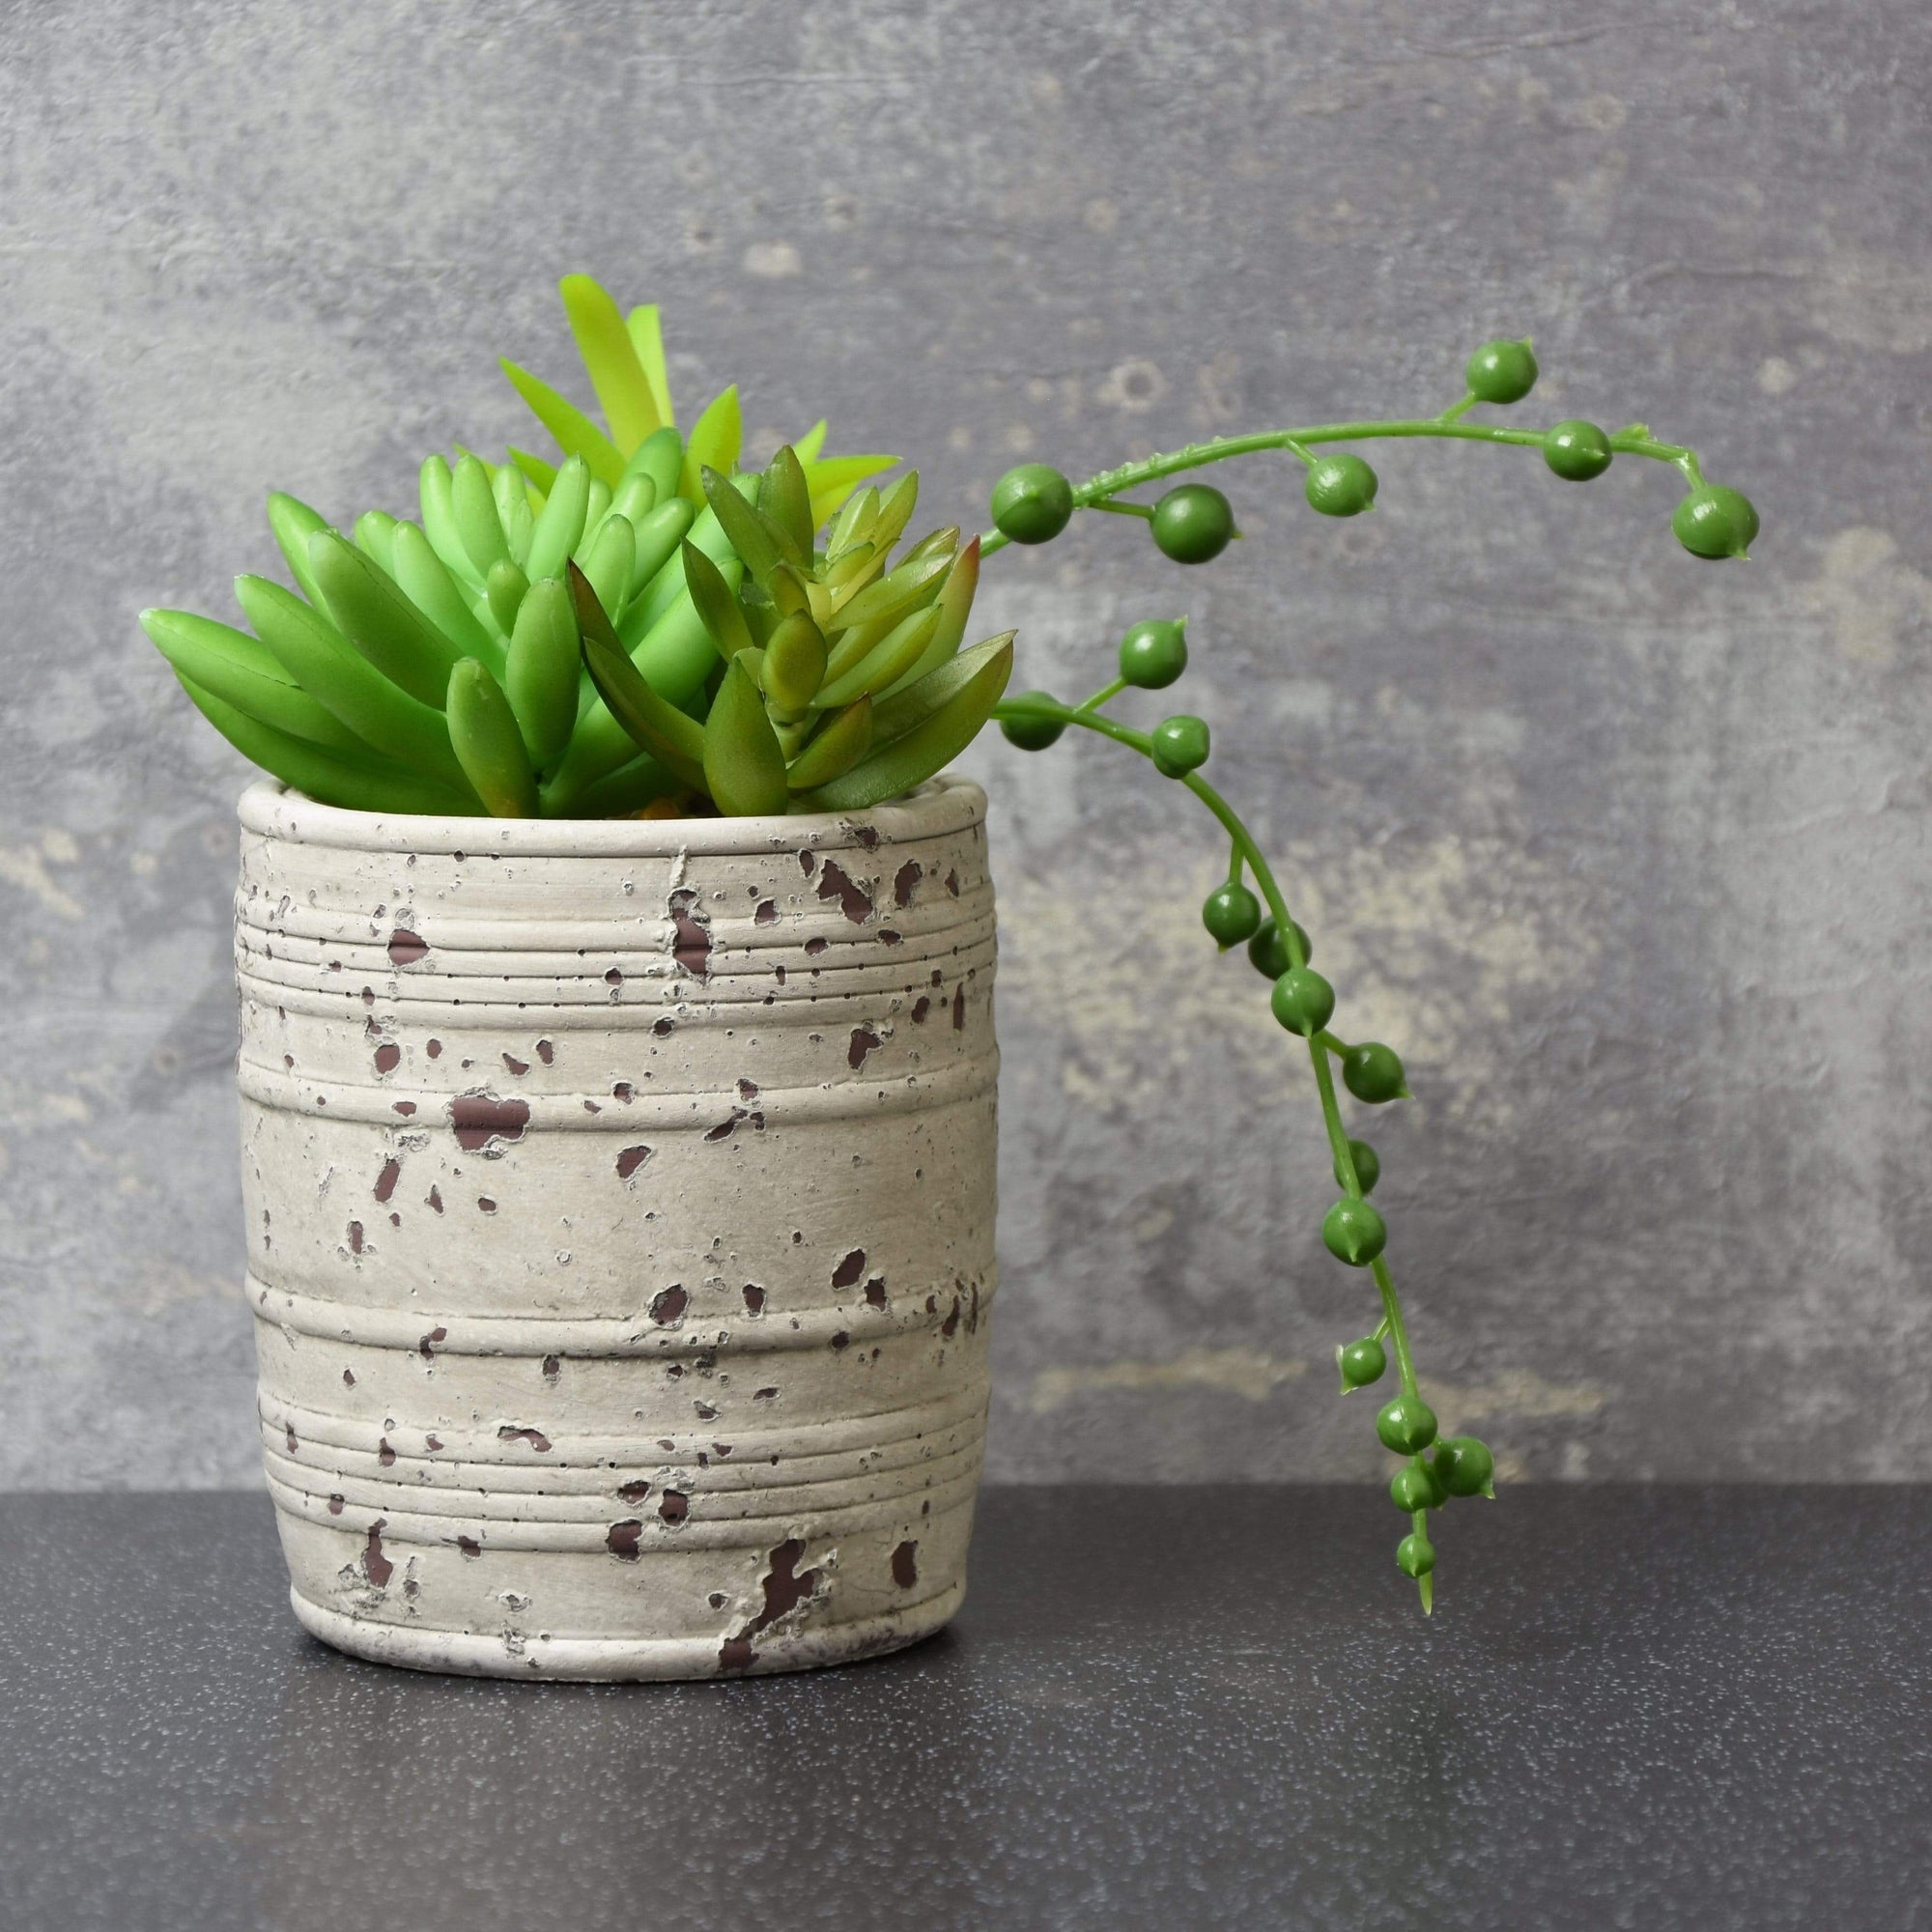 Candlelight Home Artificial Plants & Flowers Mixed Succulents in Distressed Cement Pot Green 16cm 6PK